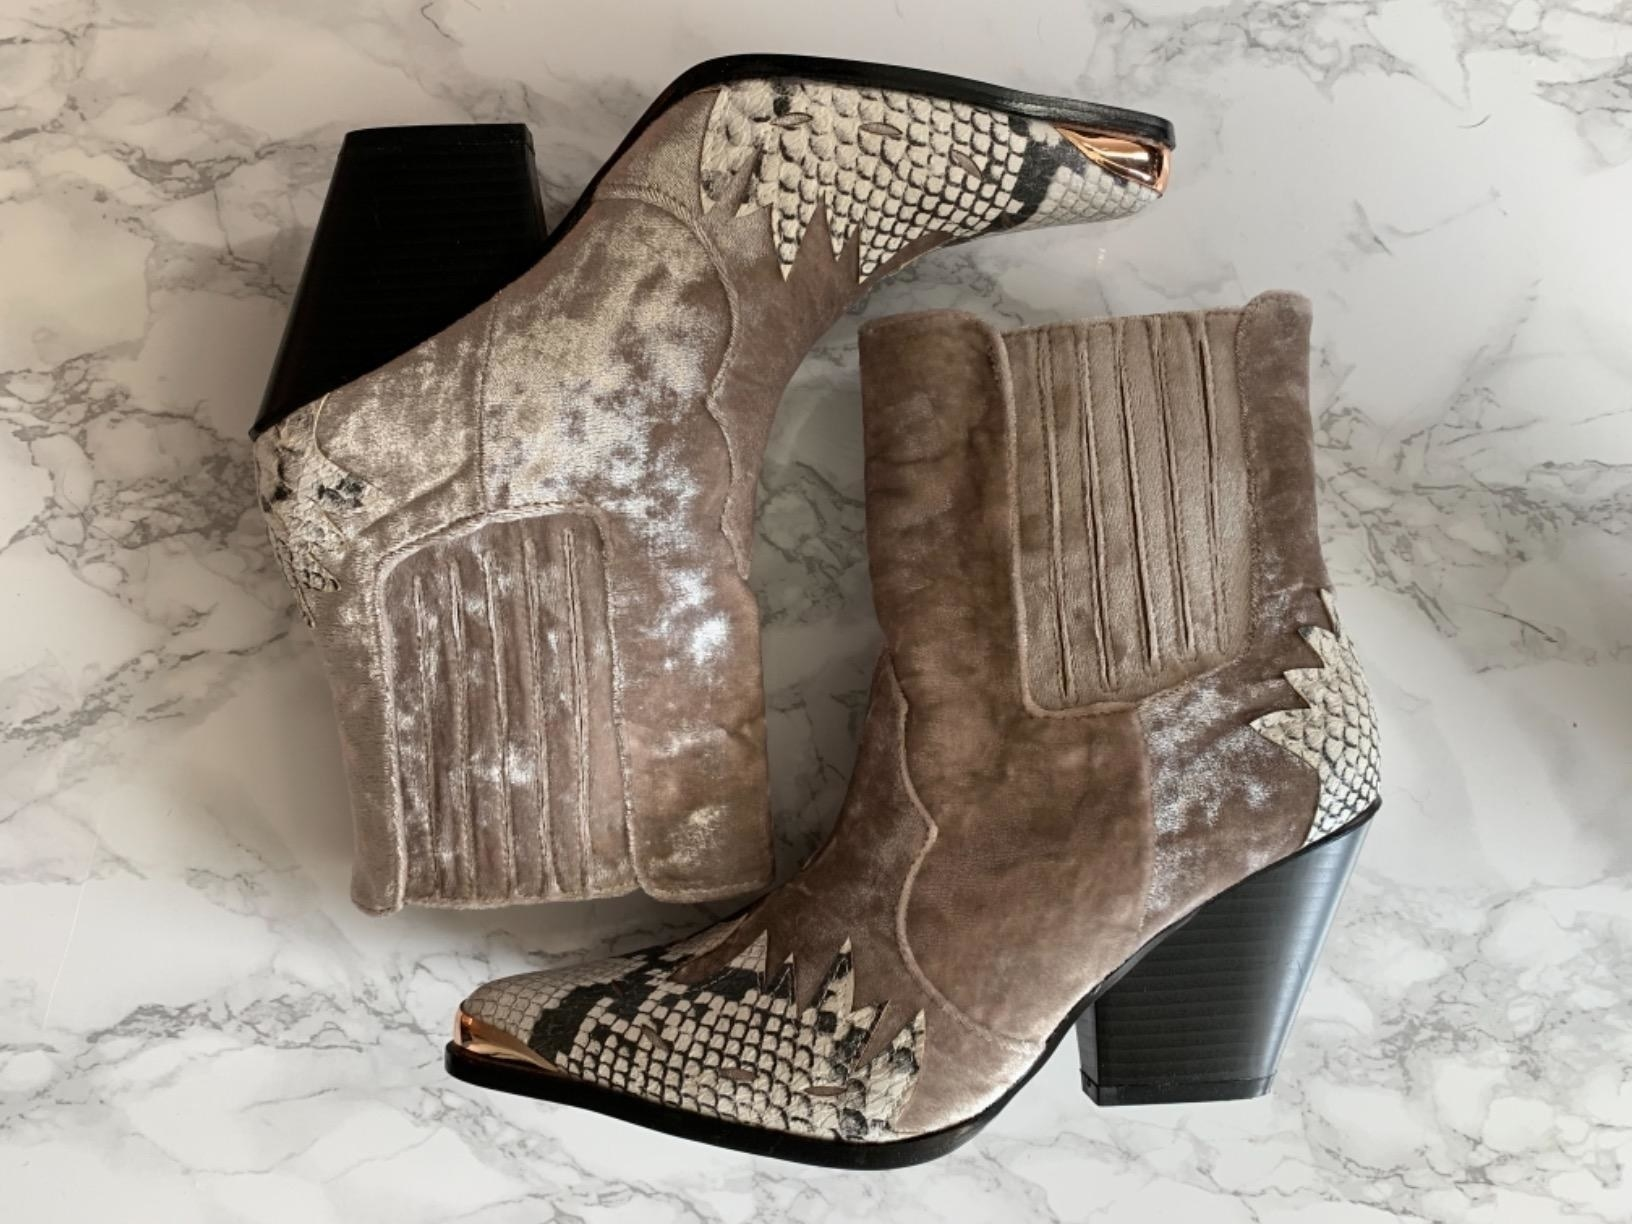 The mixed media boots with taupe-colored velvet and snakeskin accents and black heel